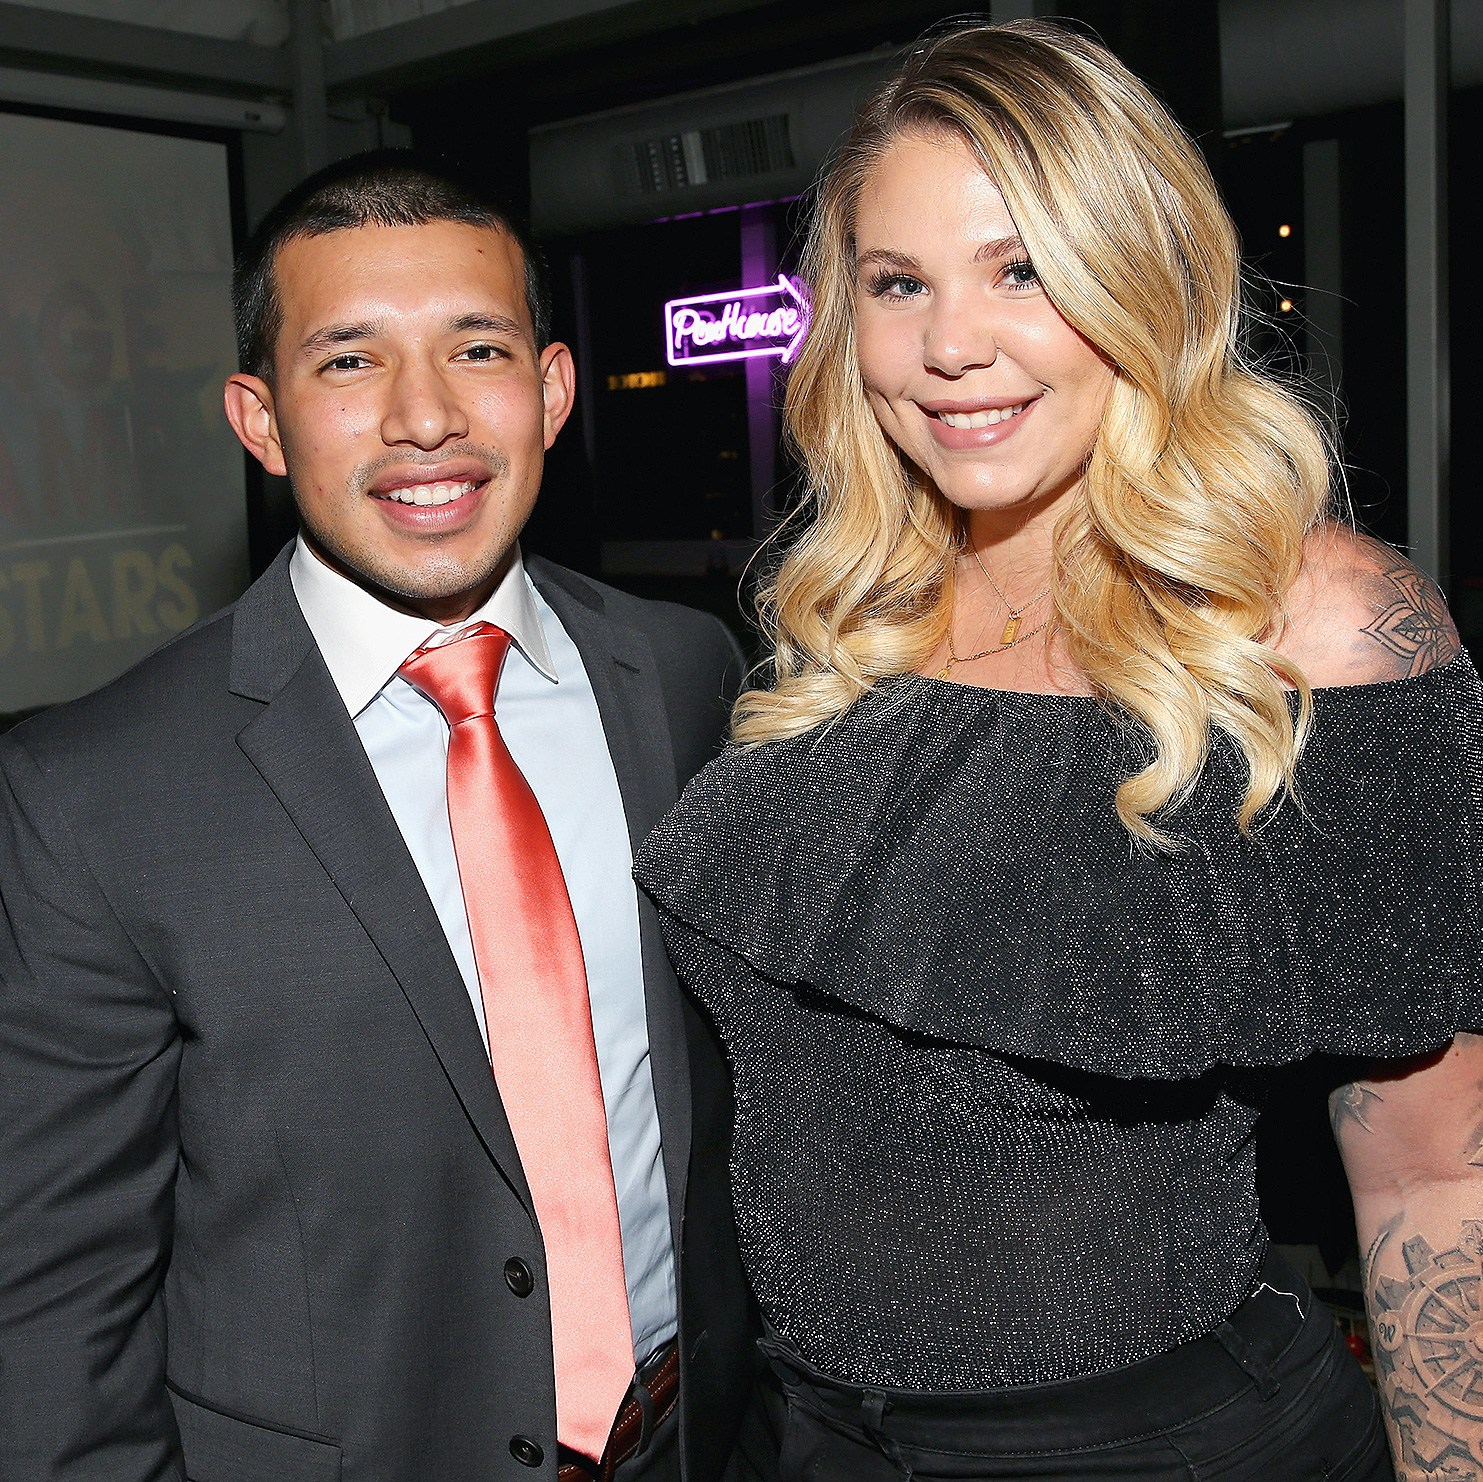 Javi Marroquin, Kailyn Lowry, Twitter